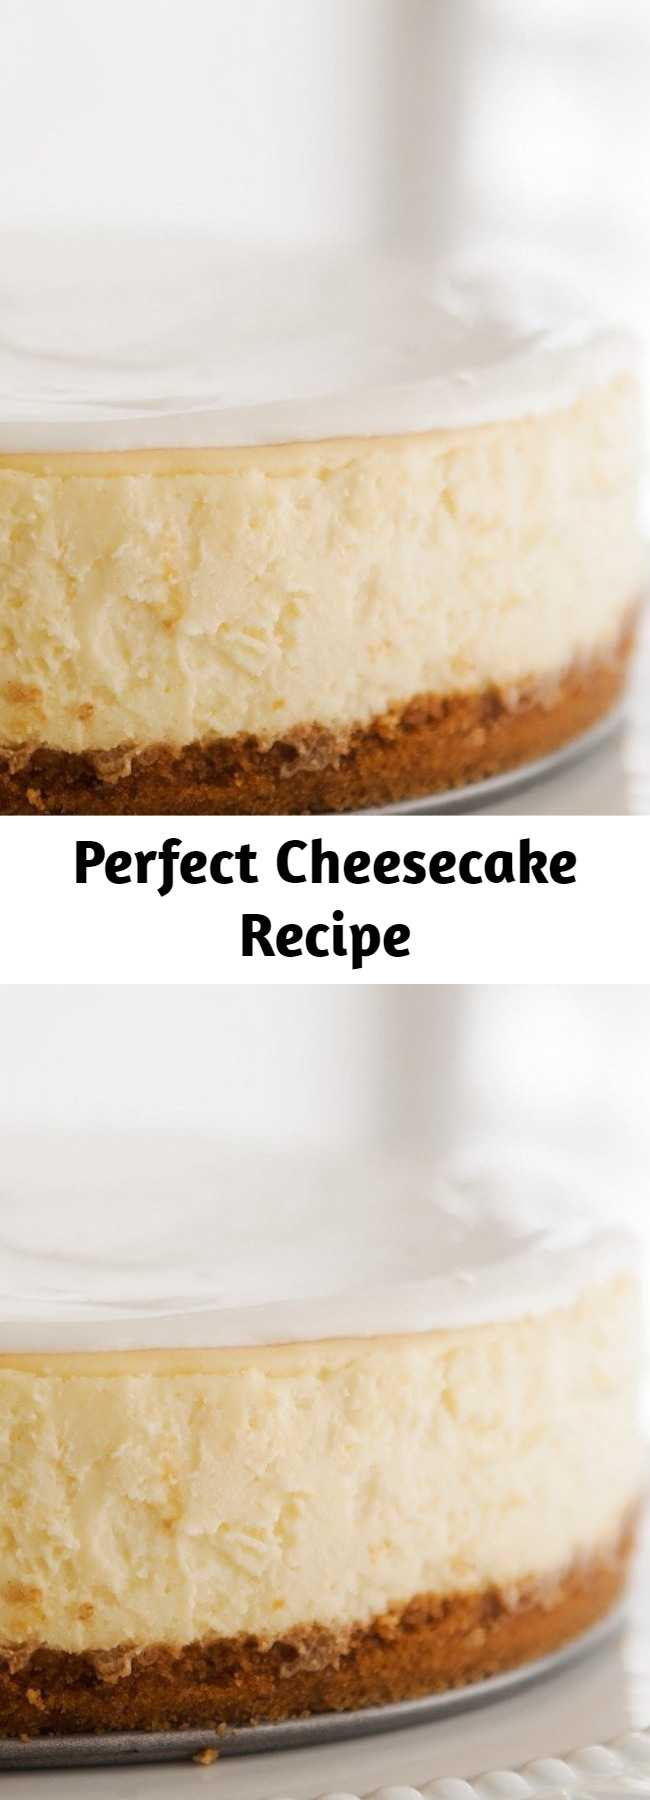 Perfect Cheesecake Recipe - Say hello to your new favorite cheesecake recipe! This is a classic New York cheesecake, baked in the oven. A water bath, plus lots of tips and guidance, help you make the best, silkiest, creamiest cheesecake EVER.